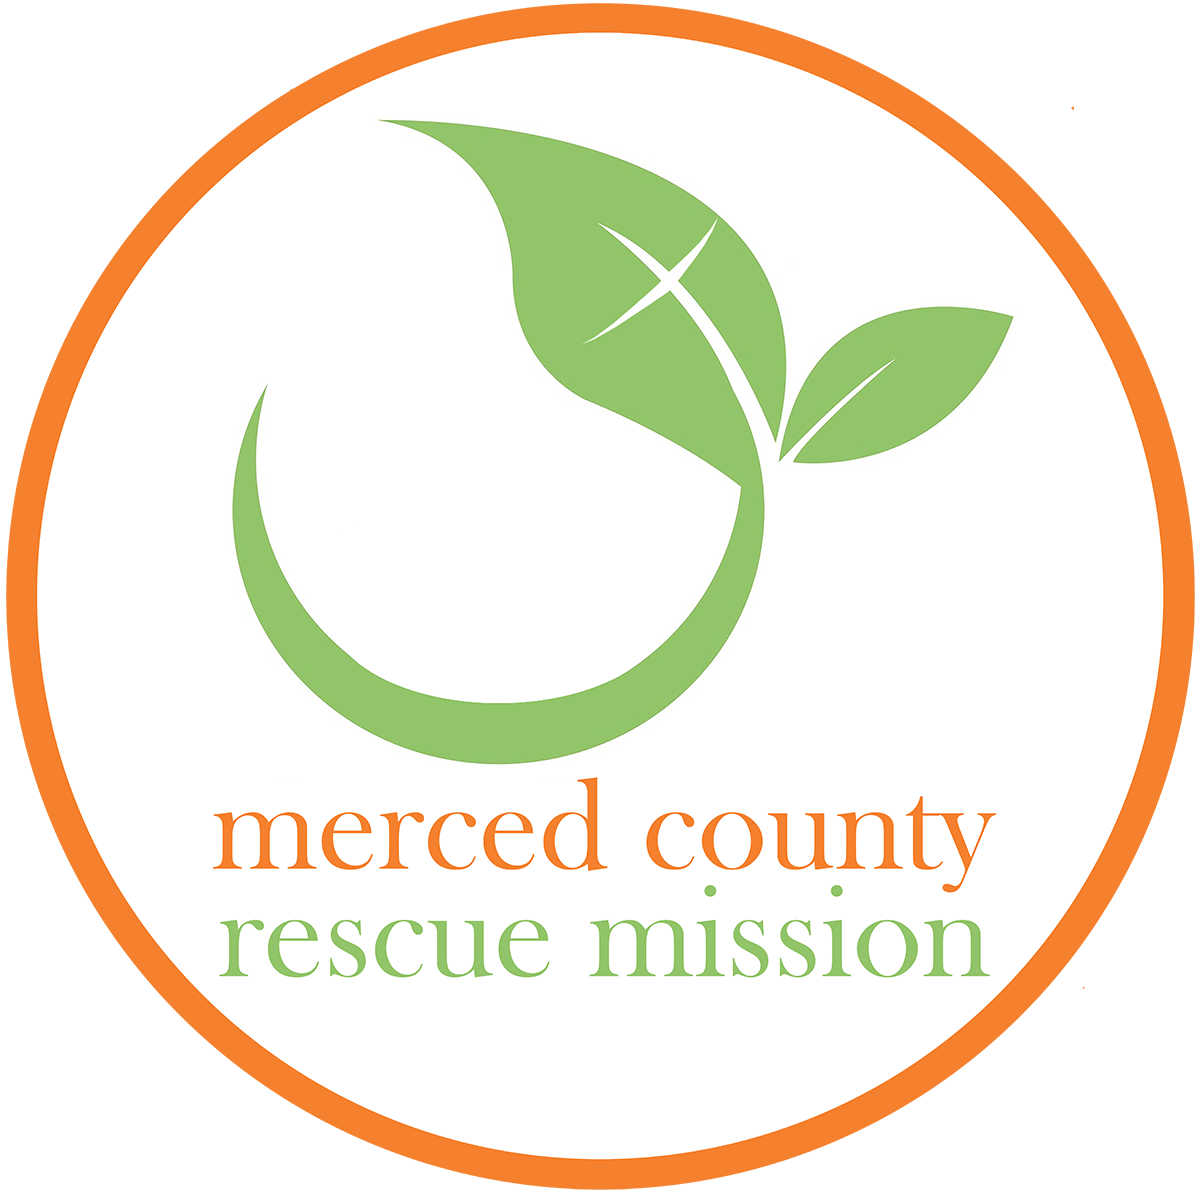 Merced County Rescue Mission